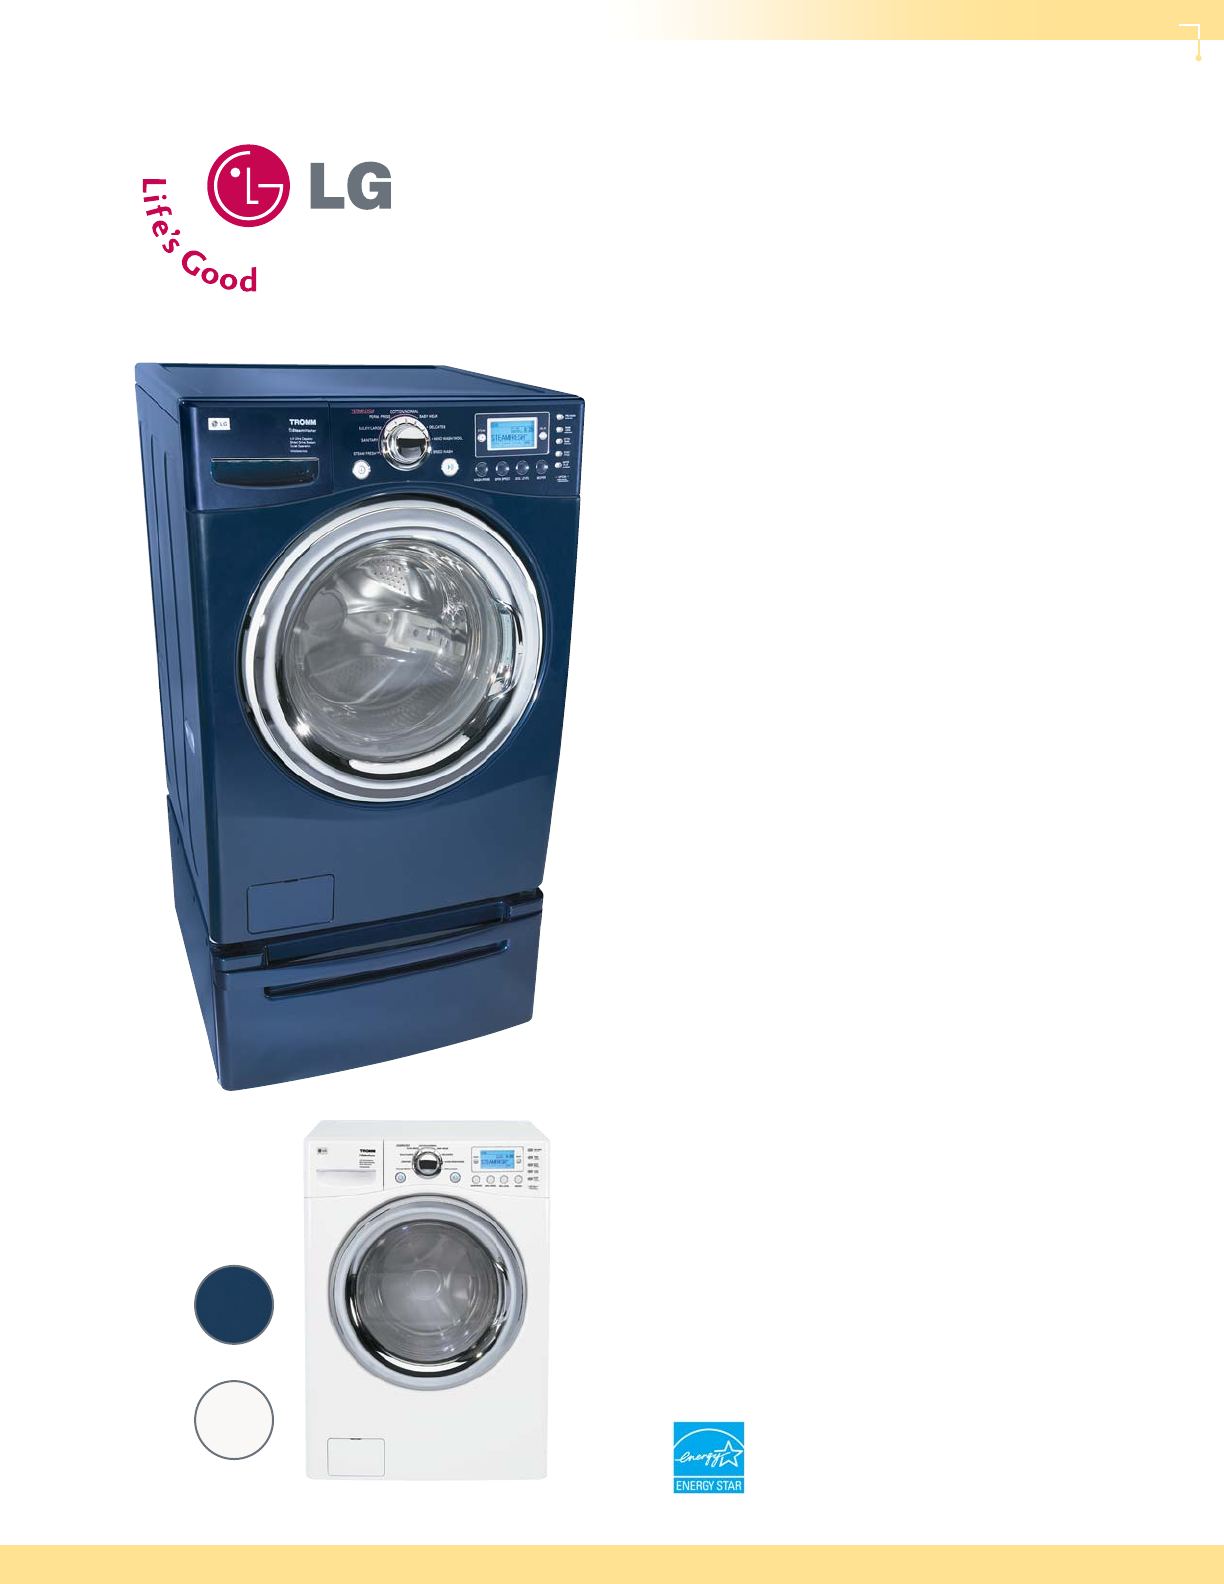 lg tromm dryer owners manual free owners manual u2022 rh wordworksbysea com LG Electric Dryer LG Electric Dryer